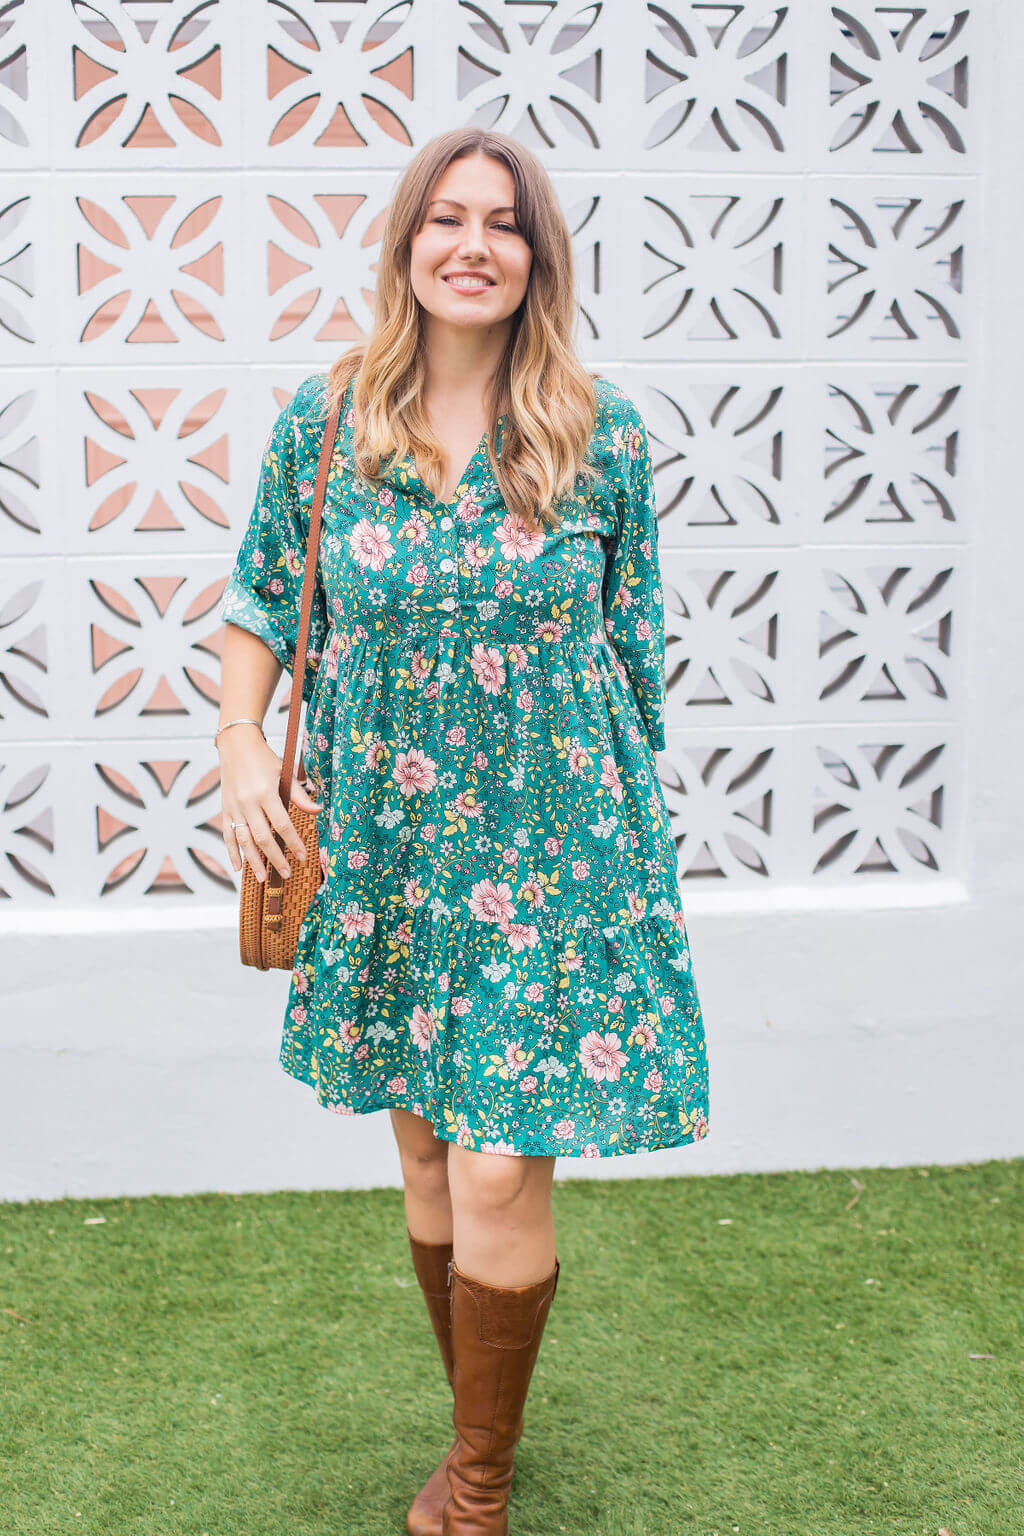 Green floral tunic dress